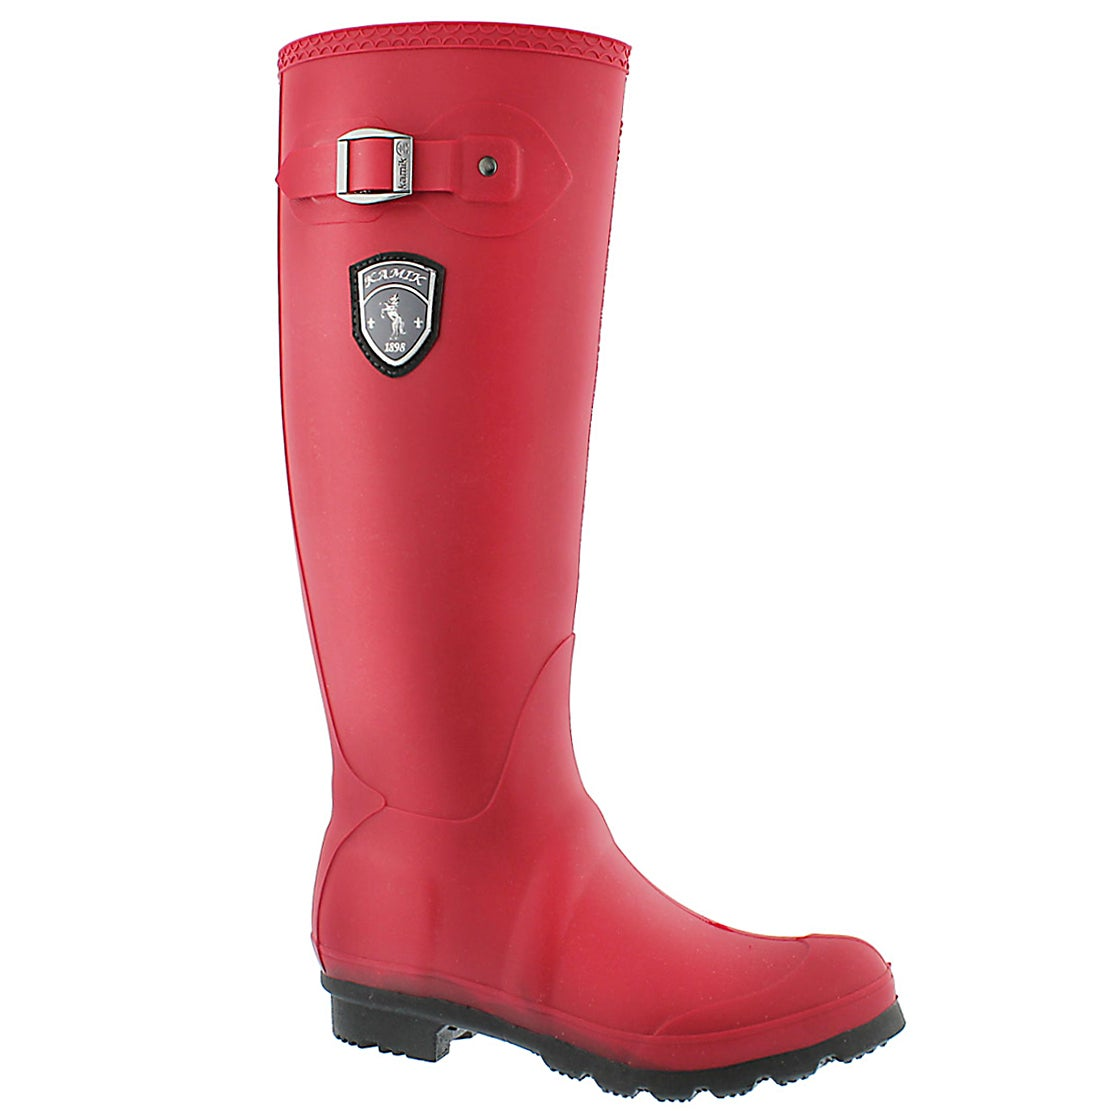 Women's JENNIFER dark red side buckle rain boots